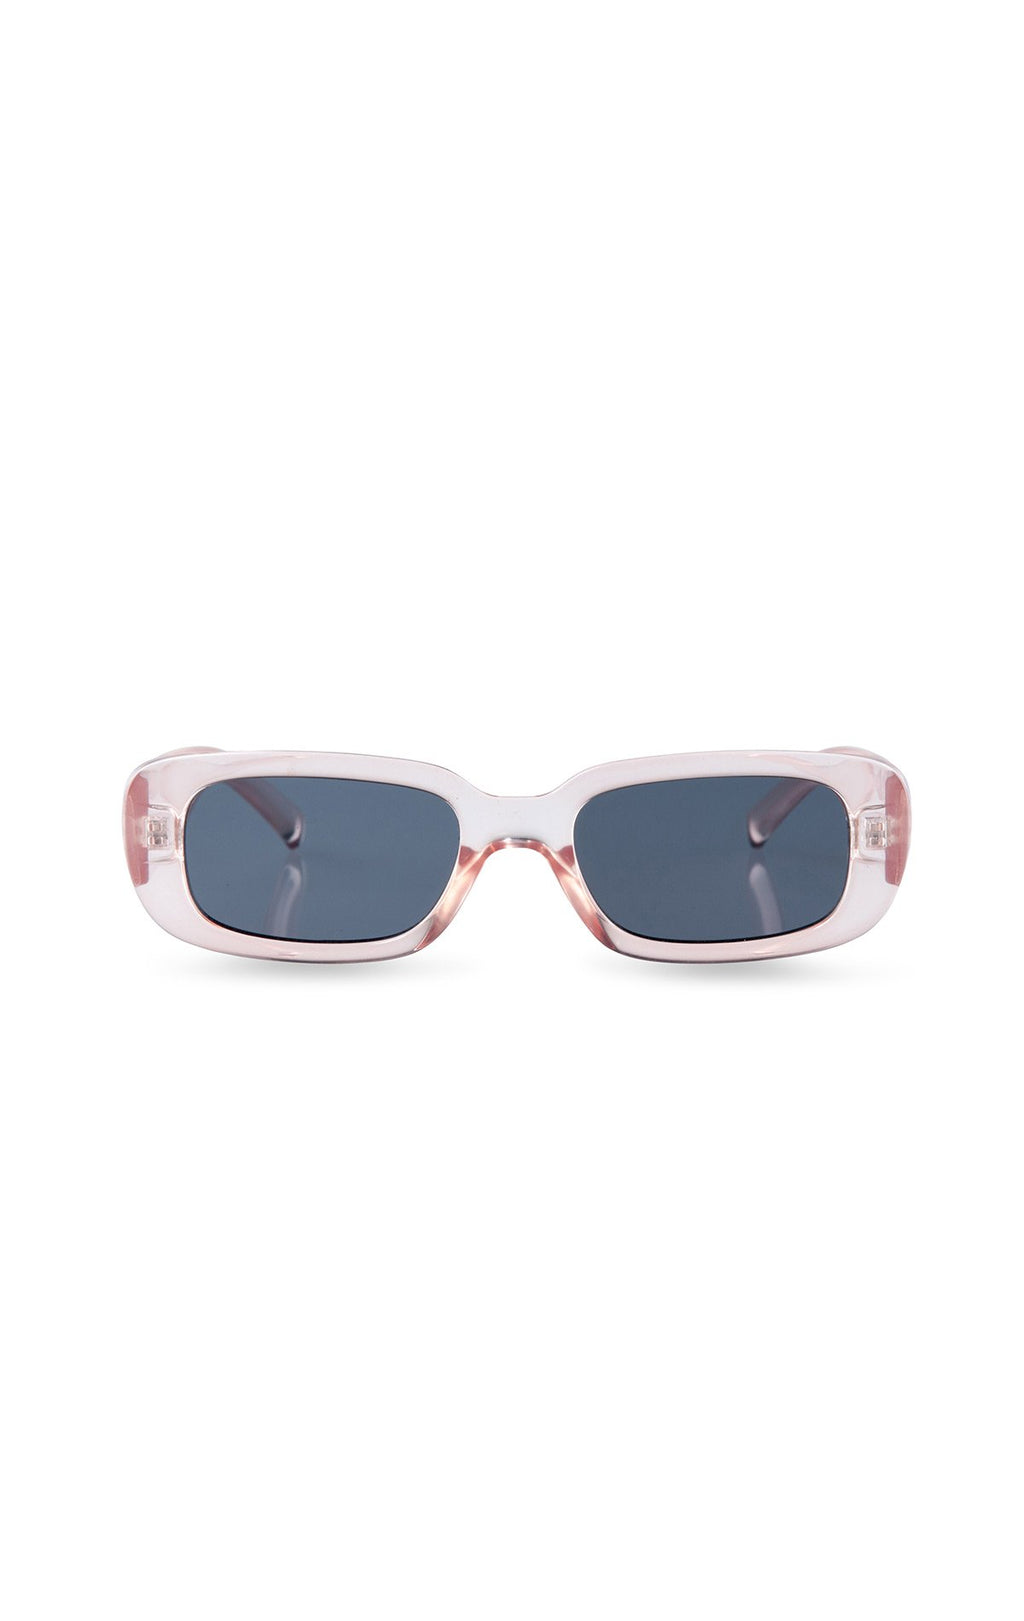 REALITY XRAY SUNGLASSES FRONT